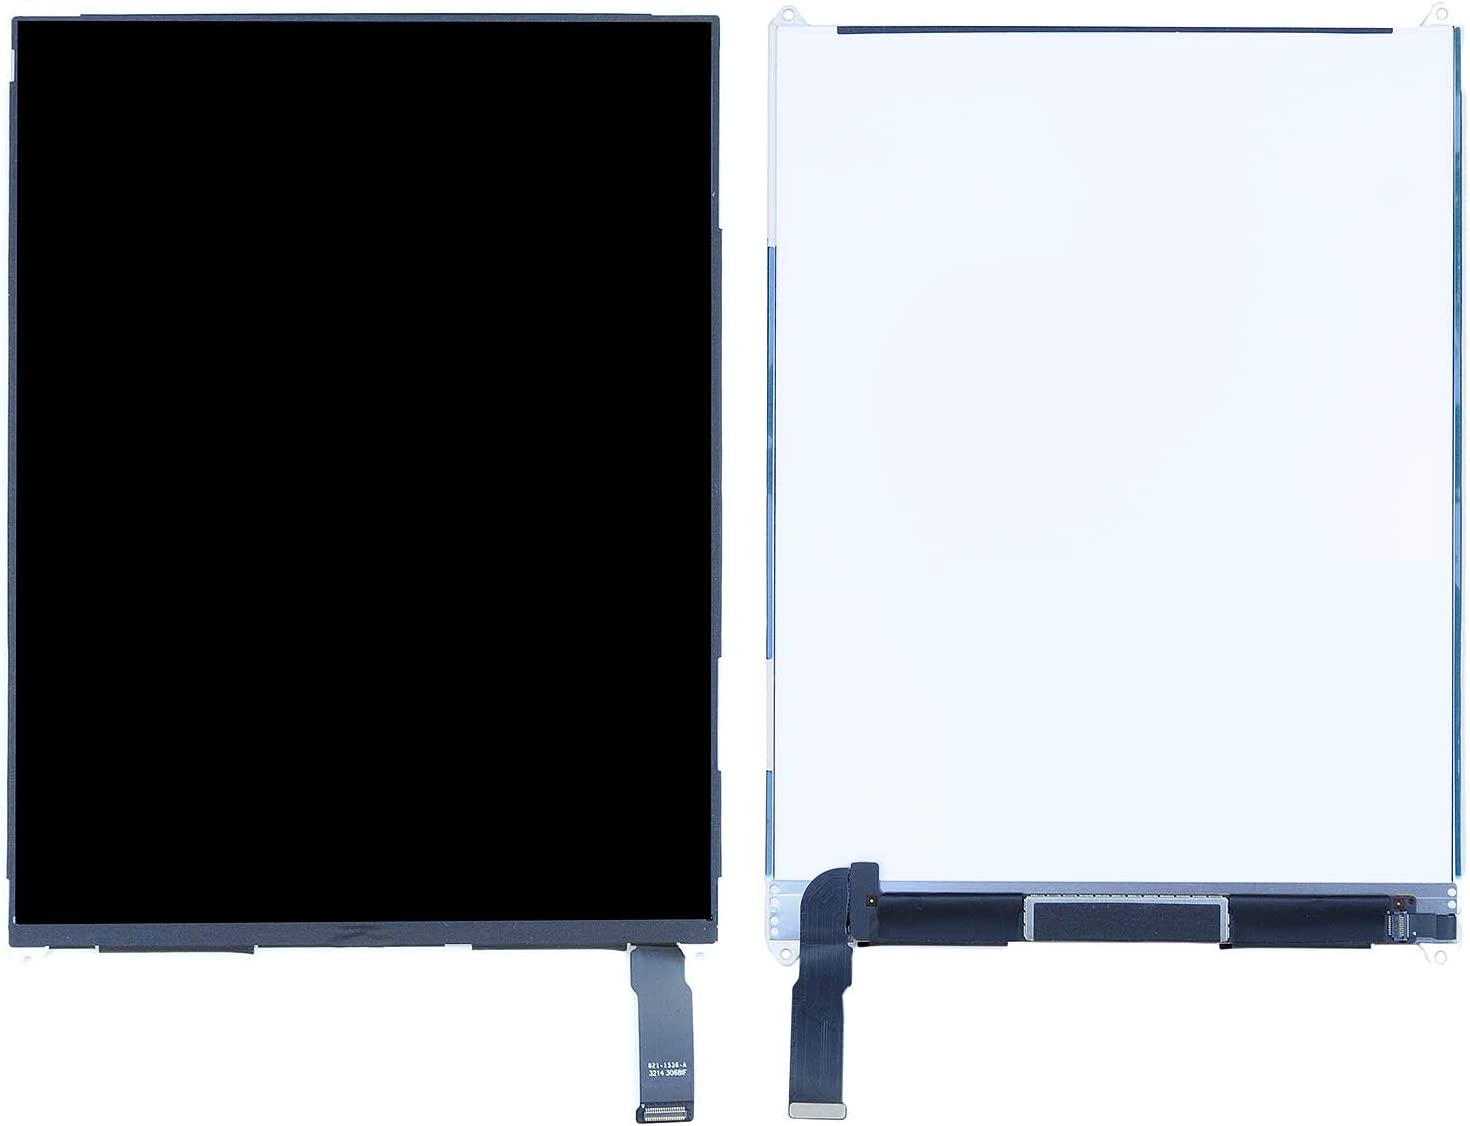 LCD Display Replacement for Apple iPad Mini Model A1432, A1454, and A1455, Not for iPad Mini 2